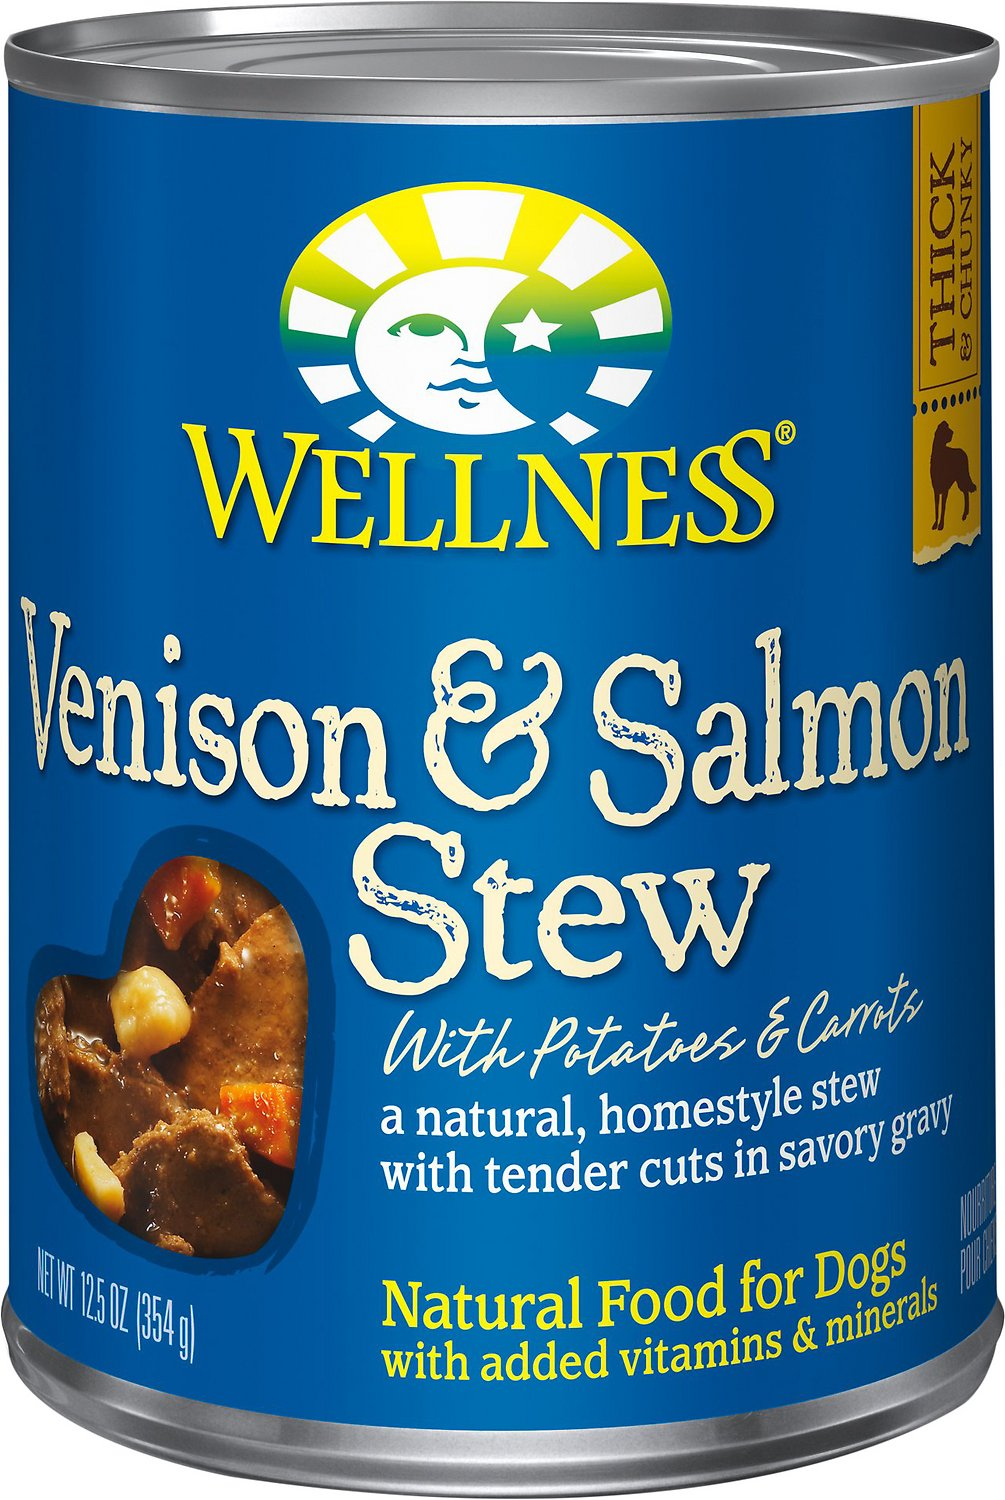 Wellness Homestyle Stew Venison & Salmon with Potatoes & Carrots Canned Dog Food, 12.5-oz